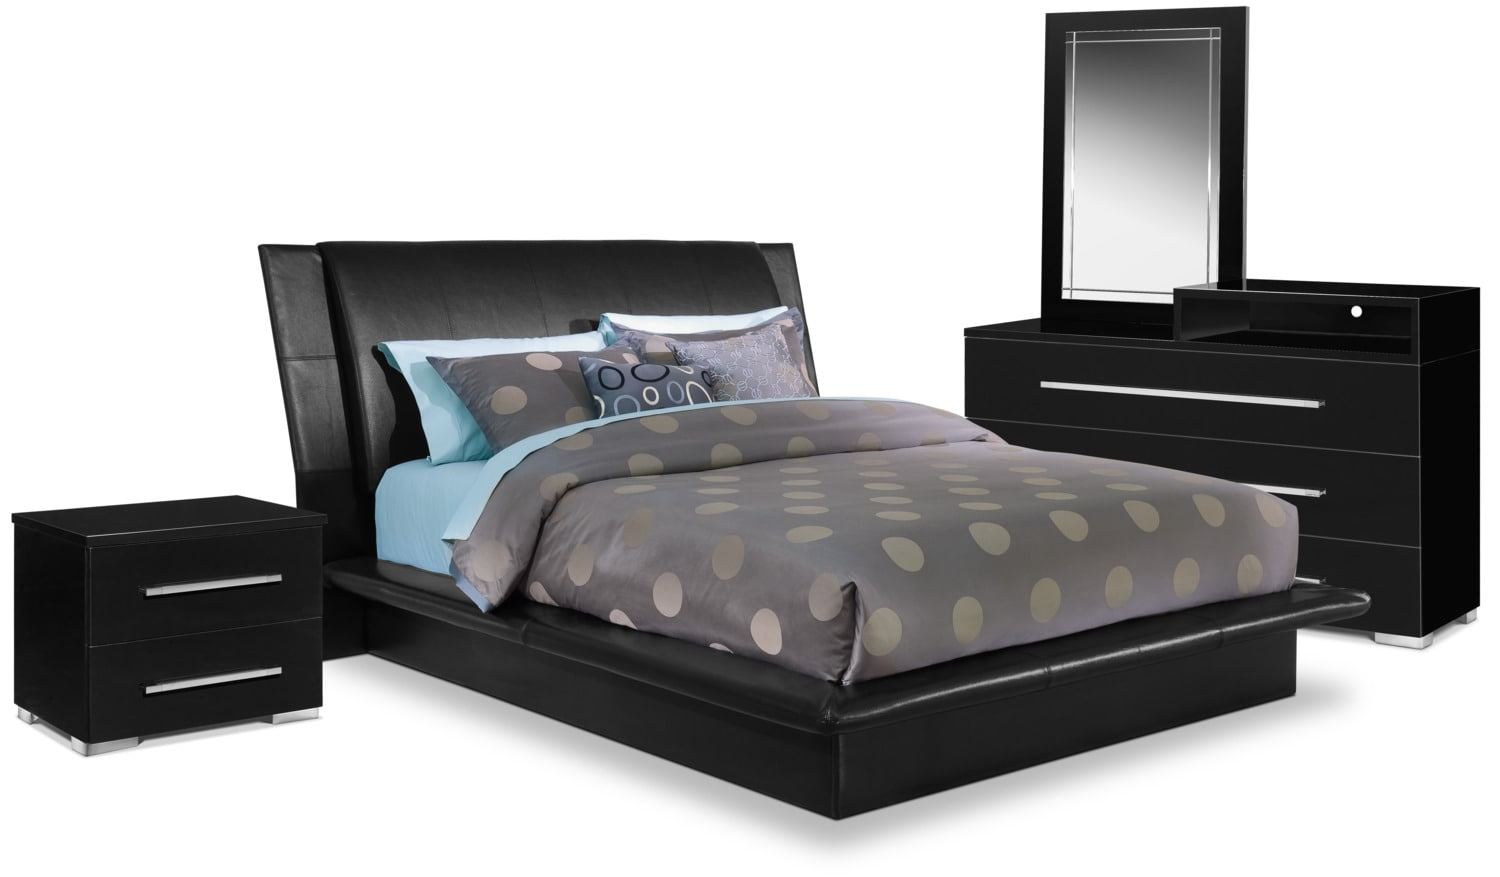 Dimora 6 Piece Queen Upholstered Bedroom Set With Media Dresser Black Val